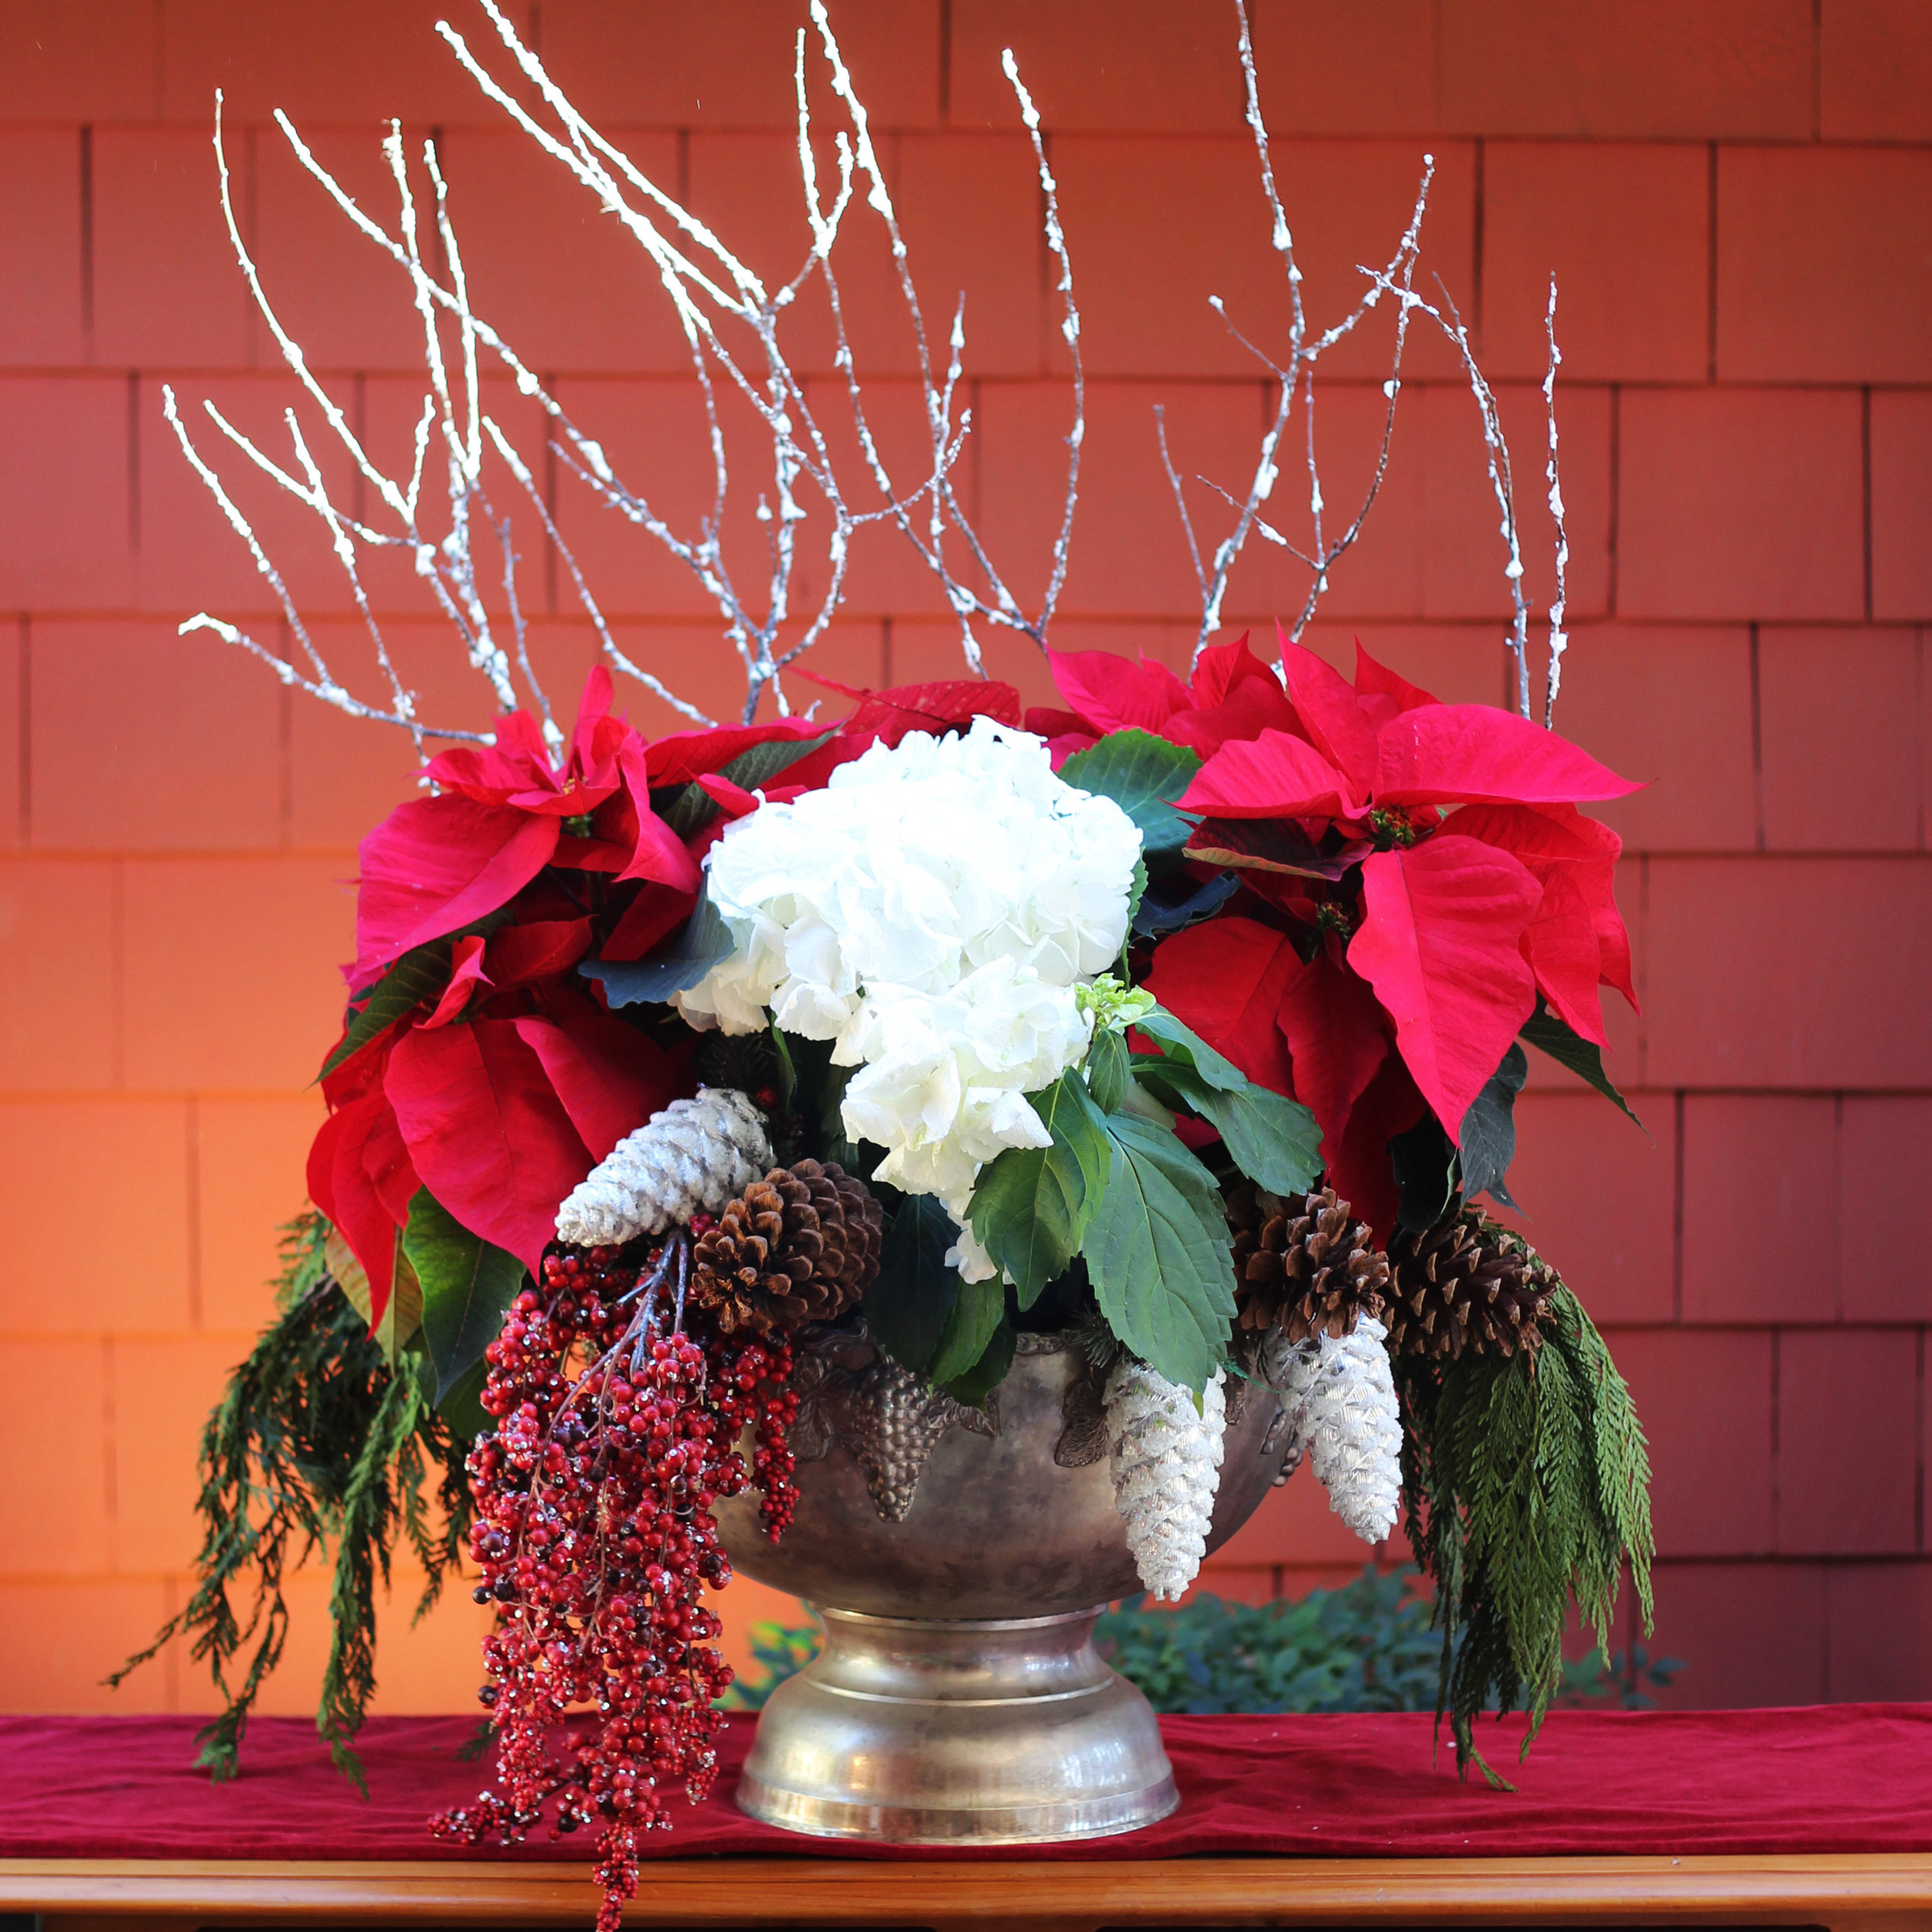 Push ends of branches into dirt in Poinsettia pot.